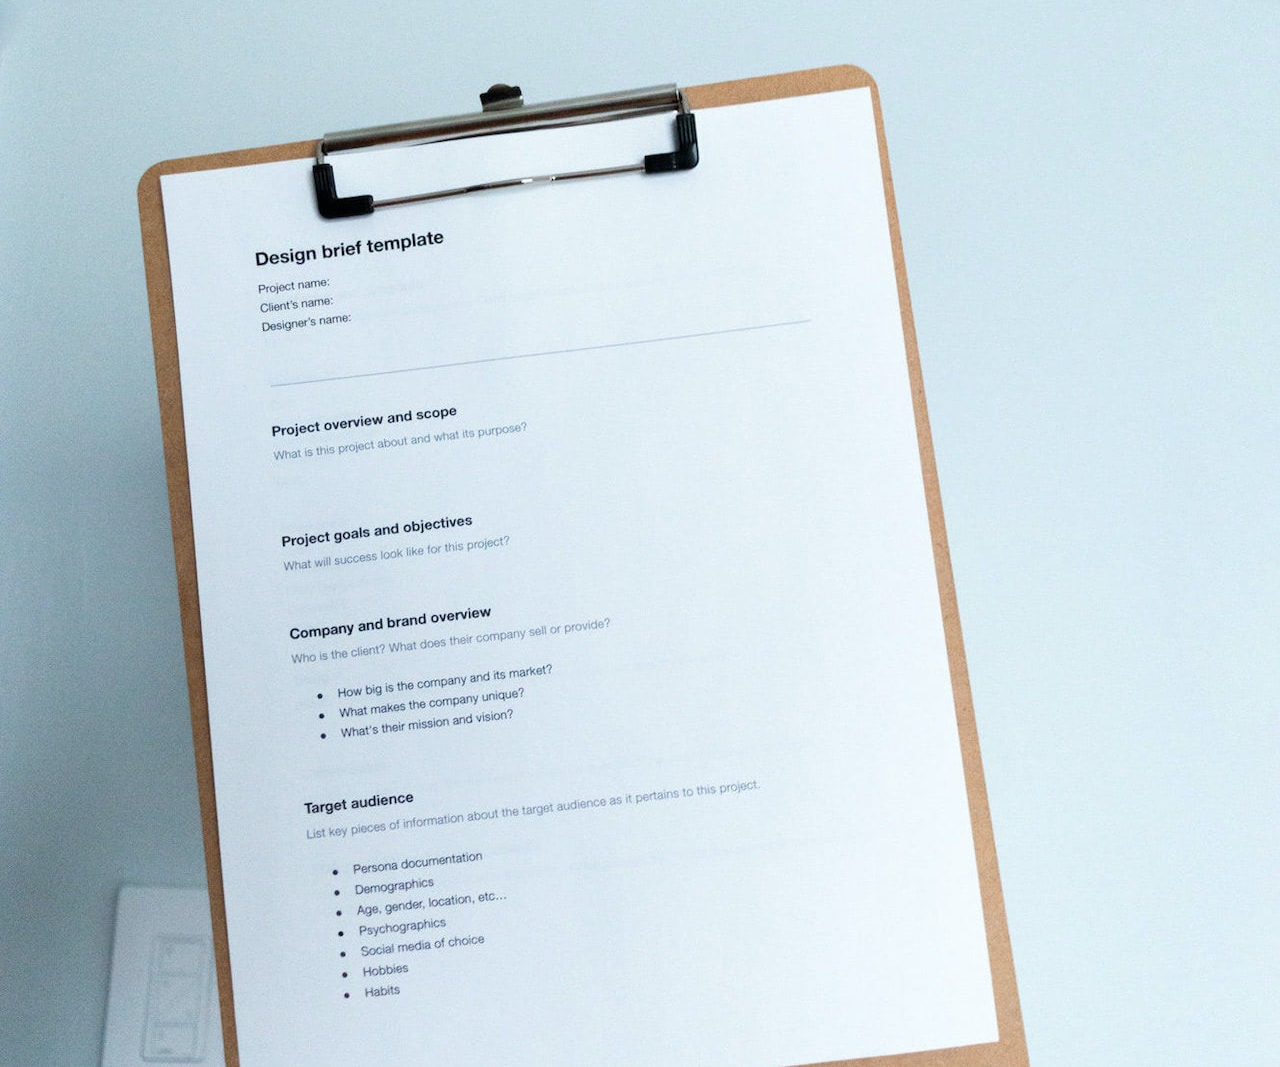 How to Draft a Design Brief for Successful Projects